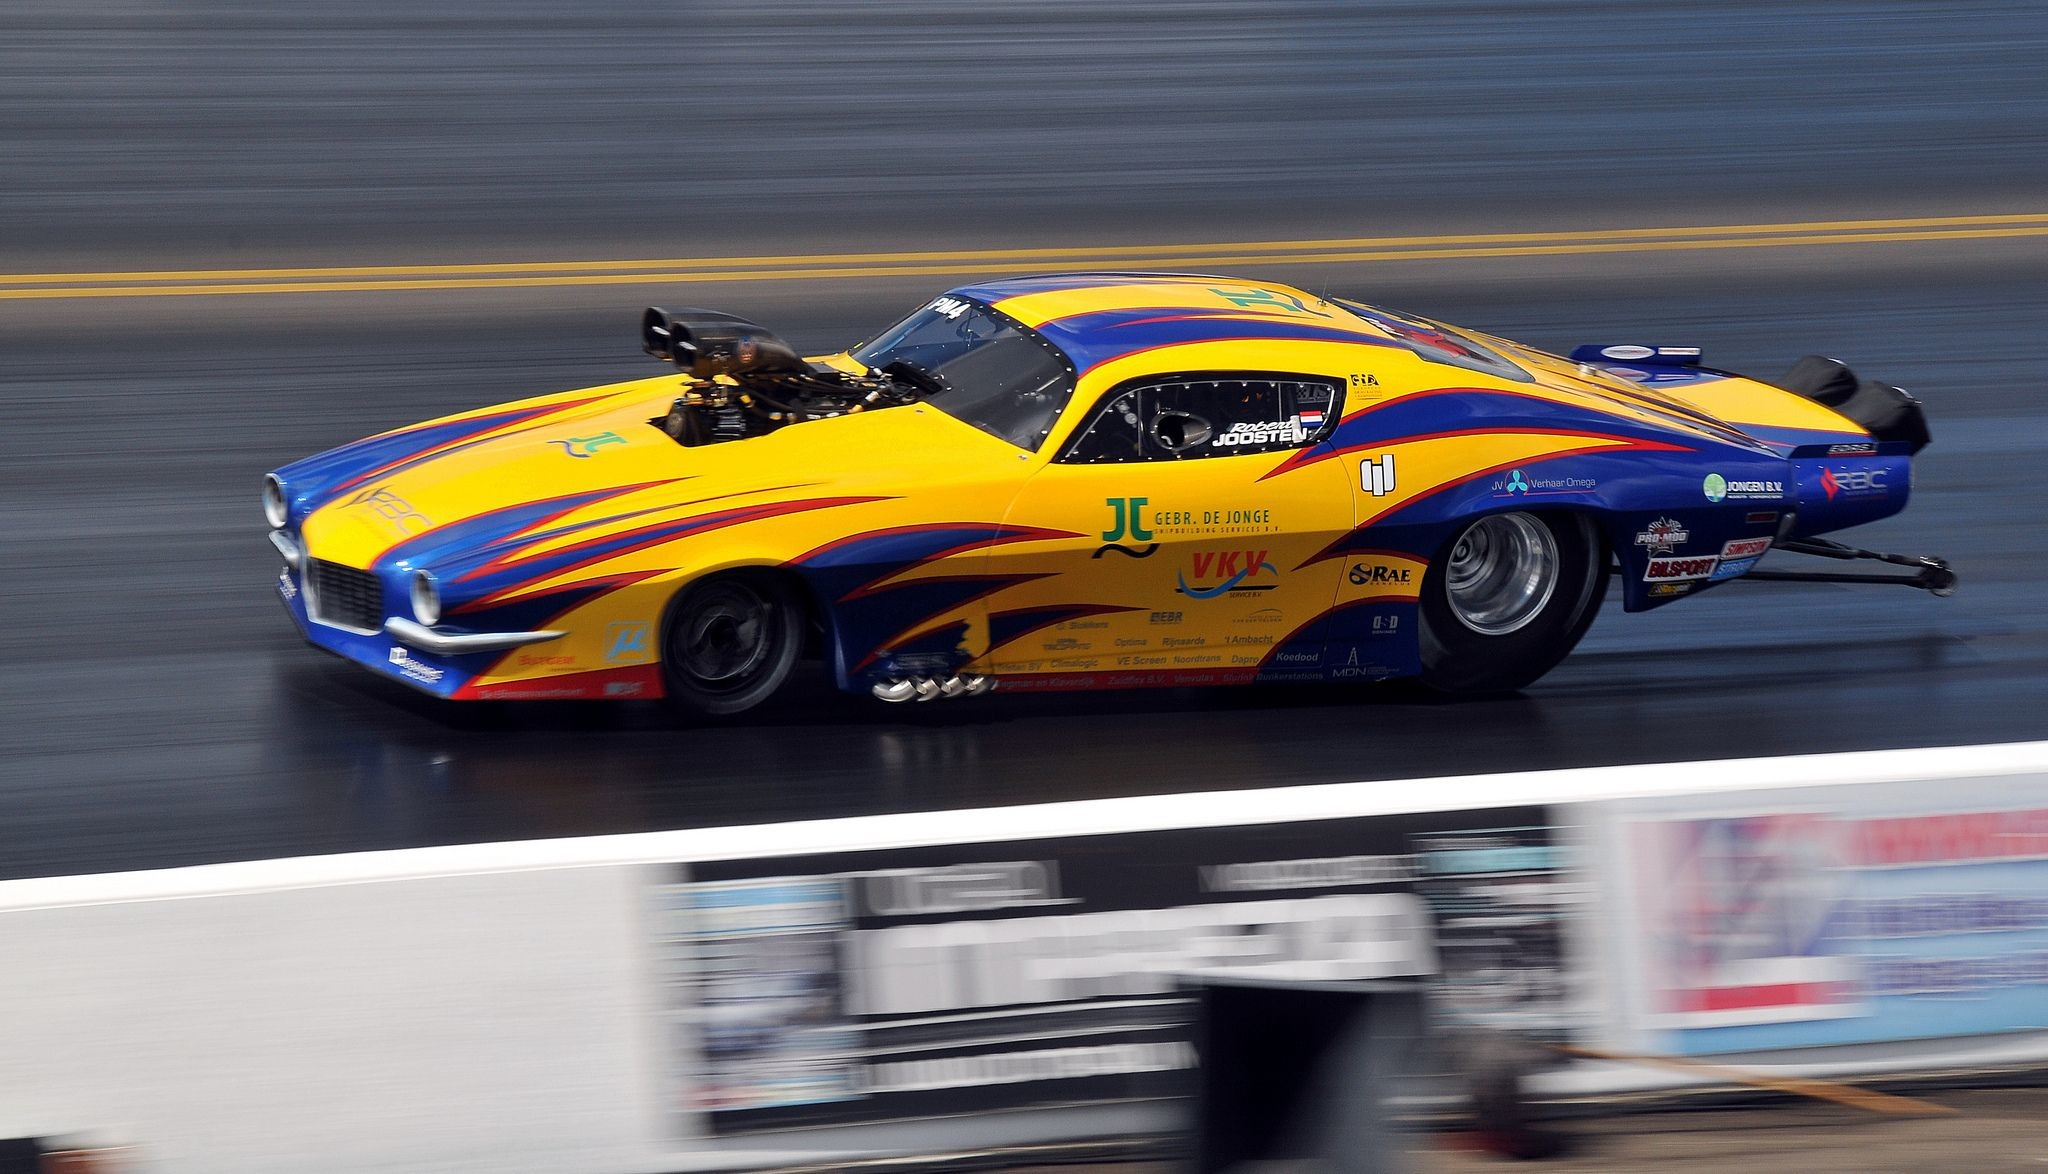 Res: 2048x1174, Muscle Cars Drag Racing | Wallpapers muscle car, drag racing, motor, race,